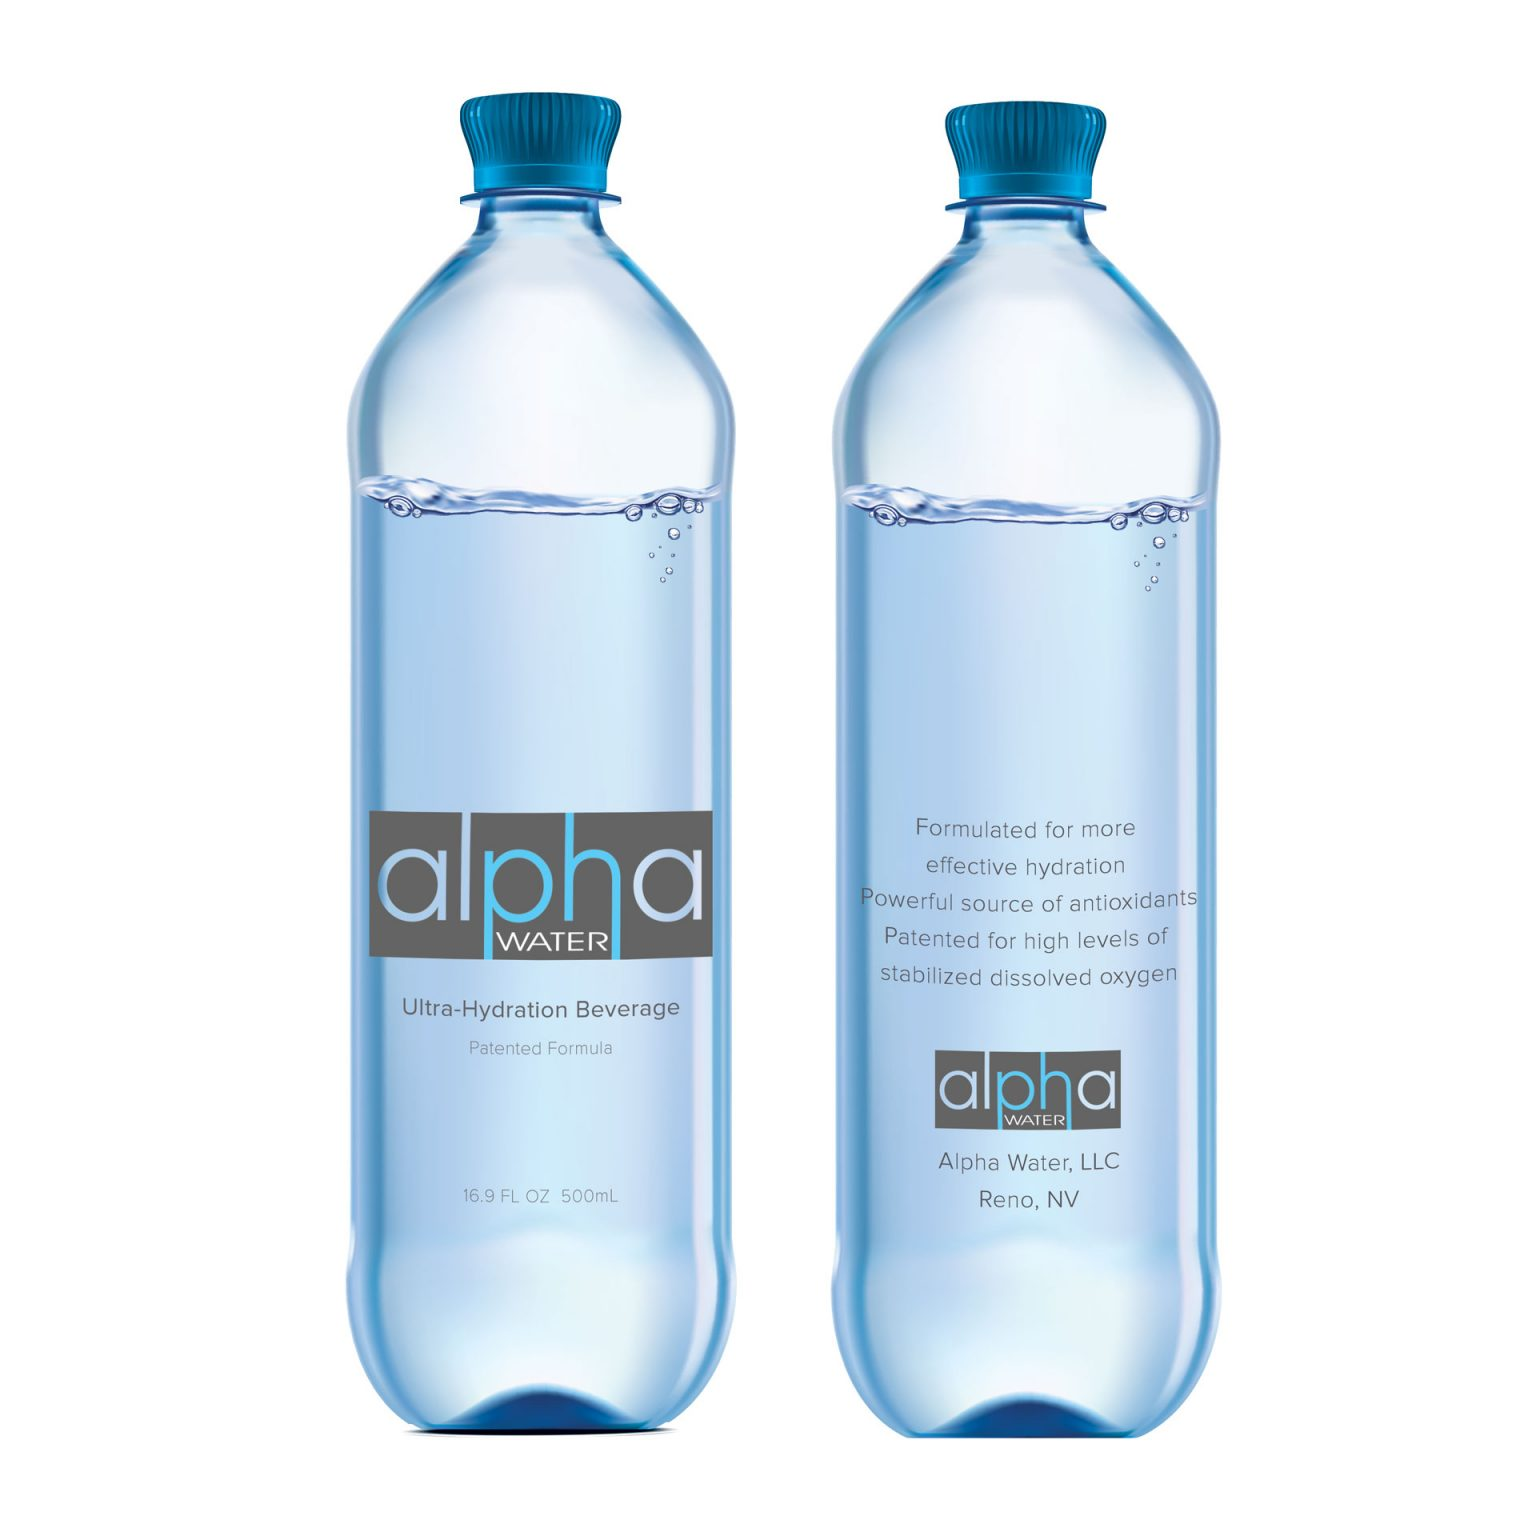 AlphaWater packaging by Alvalyn Lundgren